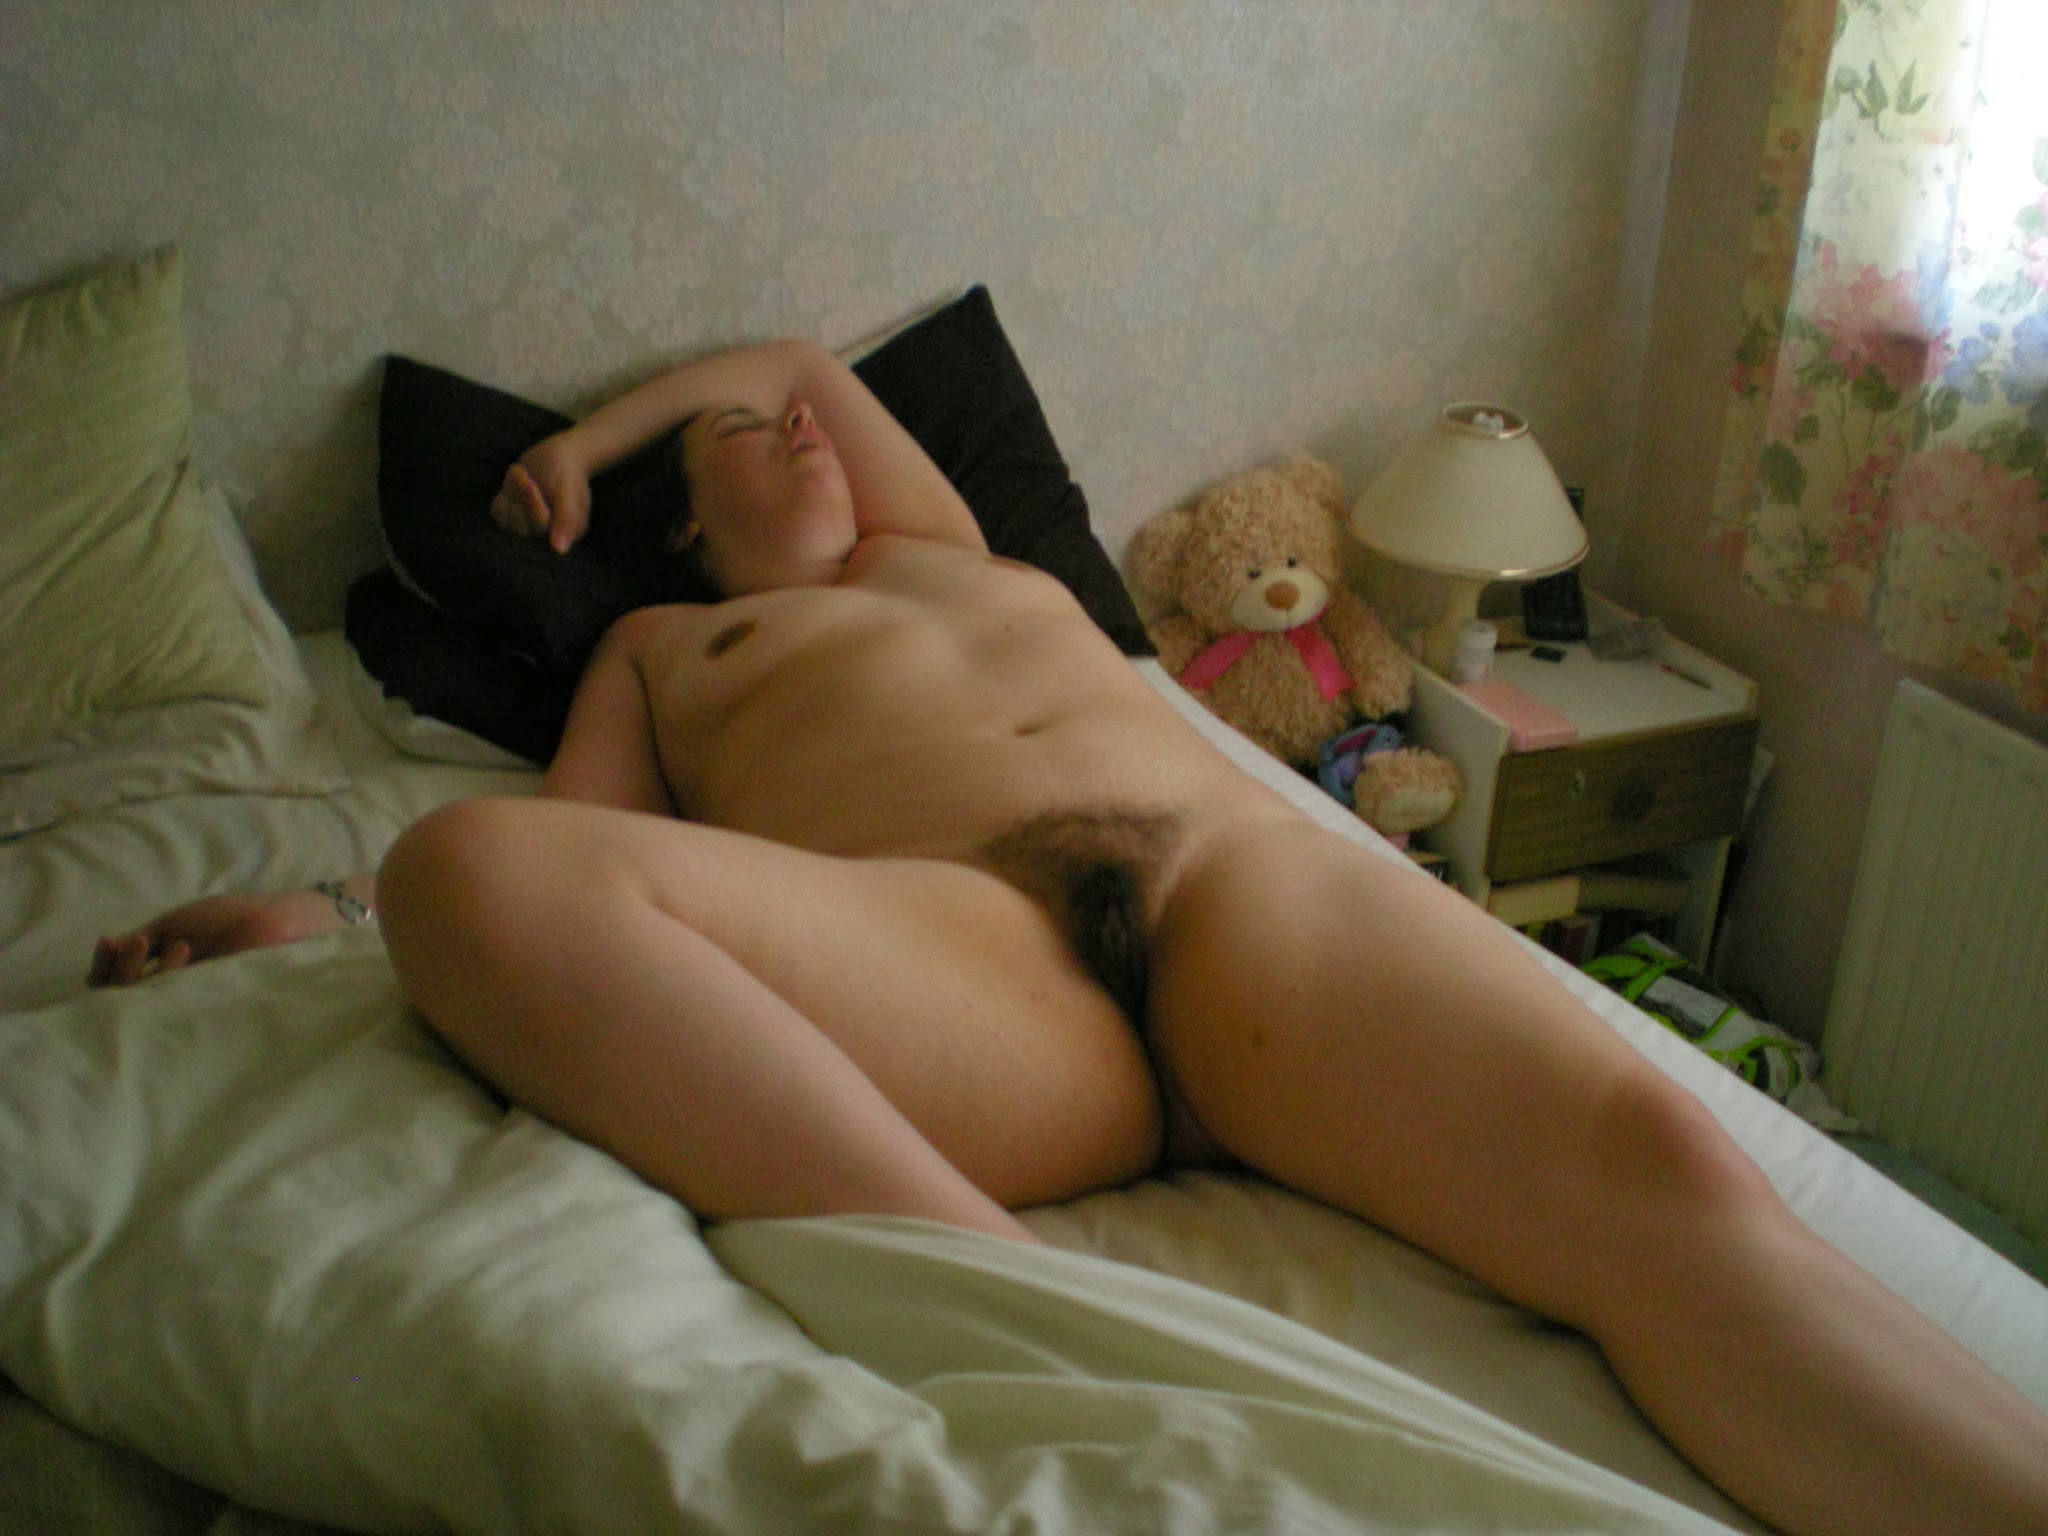 Mature young sleep nude, cream pies in the pussy